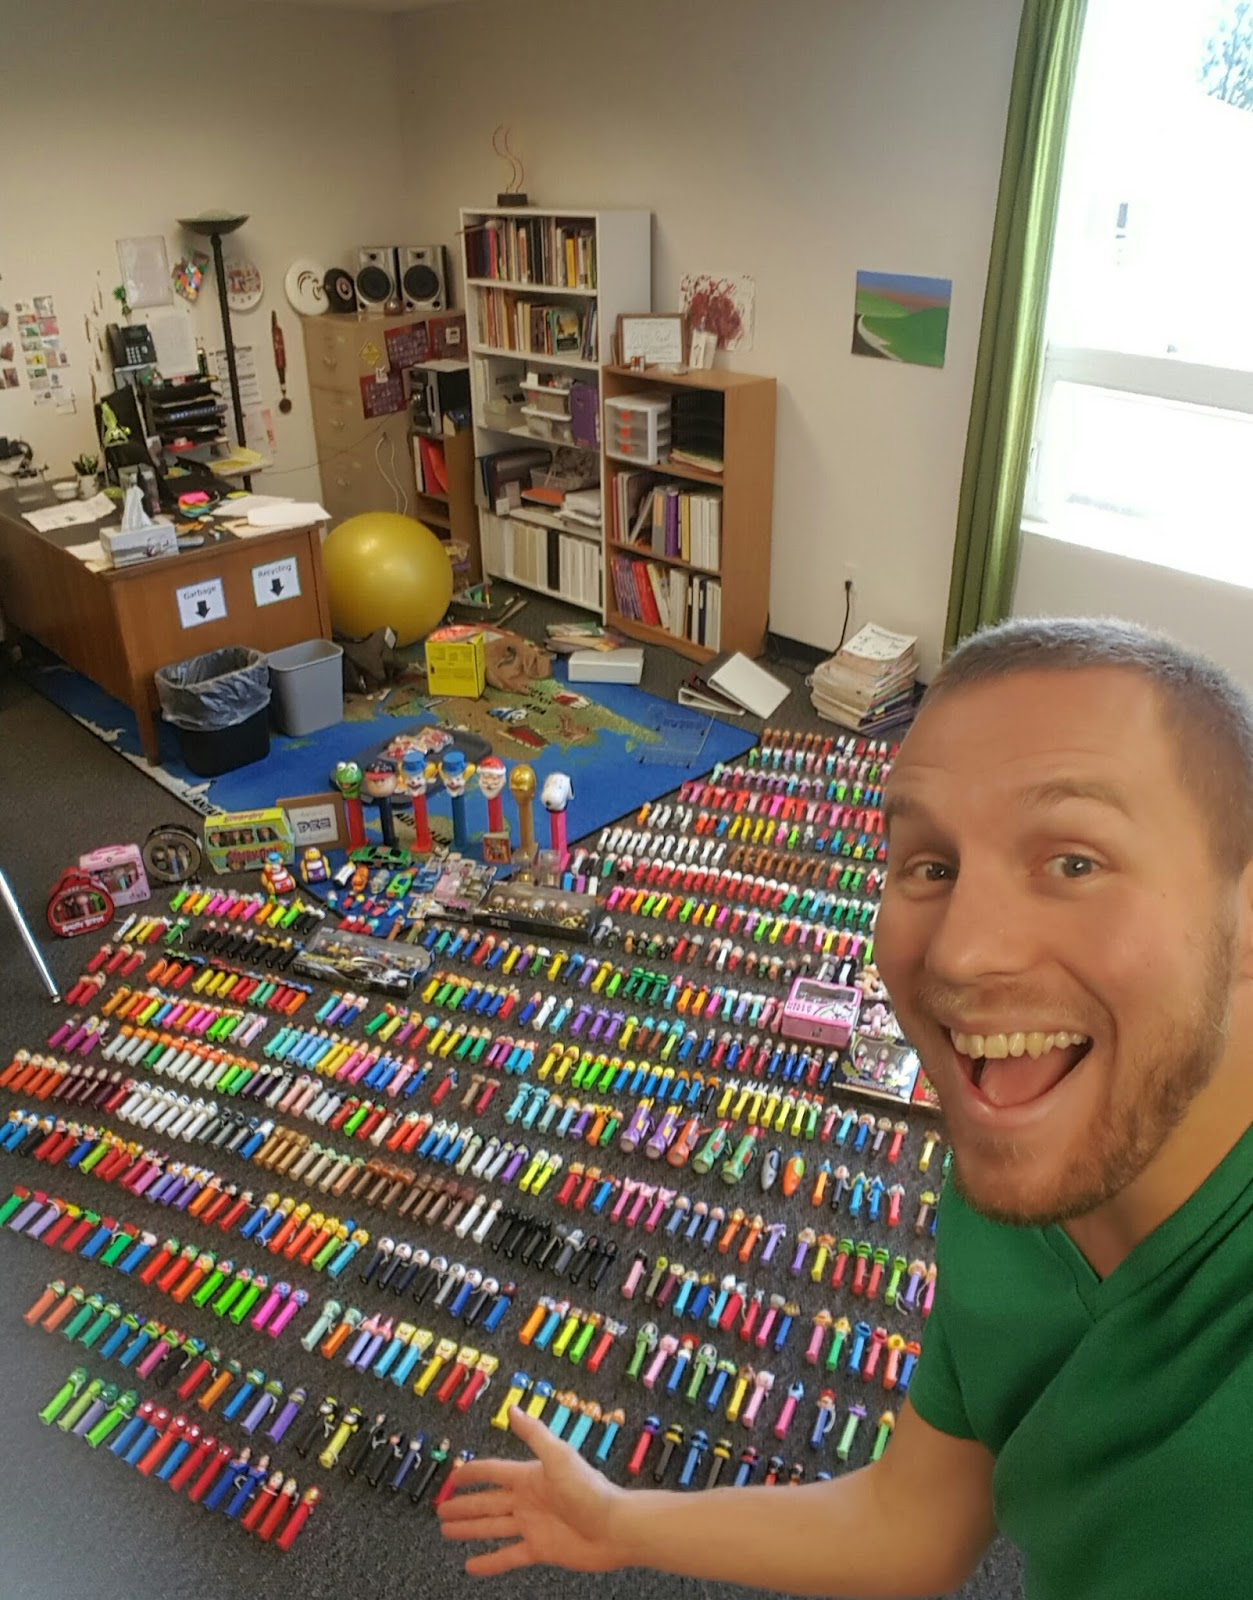 Arlington Man's Massive Pez Collection Started as a Bet | ARLnow.com